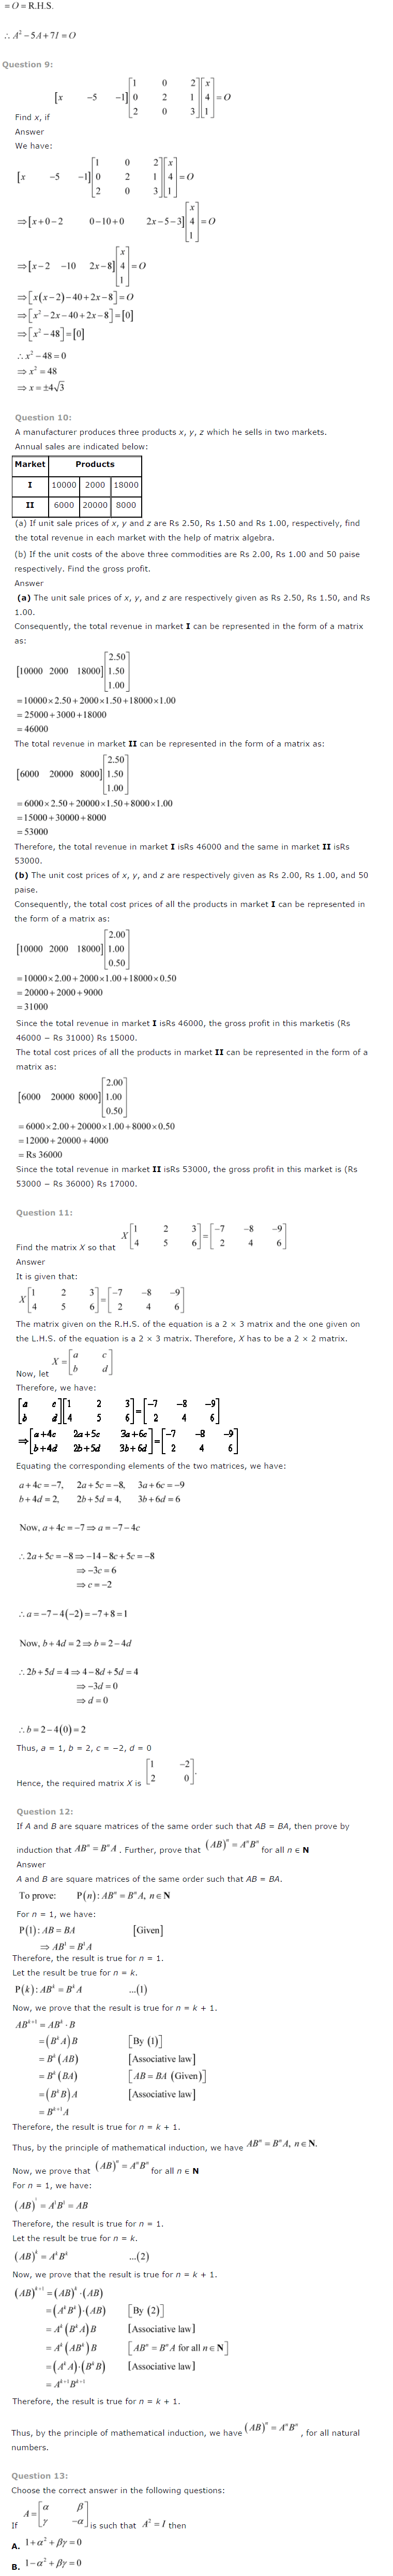 NCERT Solutions for Class 12 Maths Chapter 3 Matrices ex 3.13